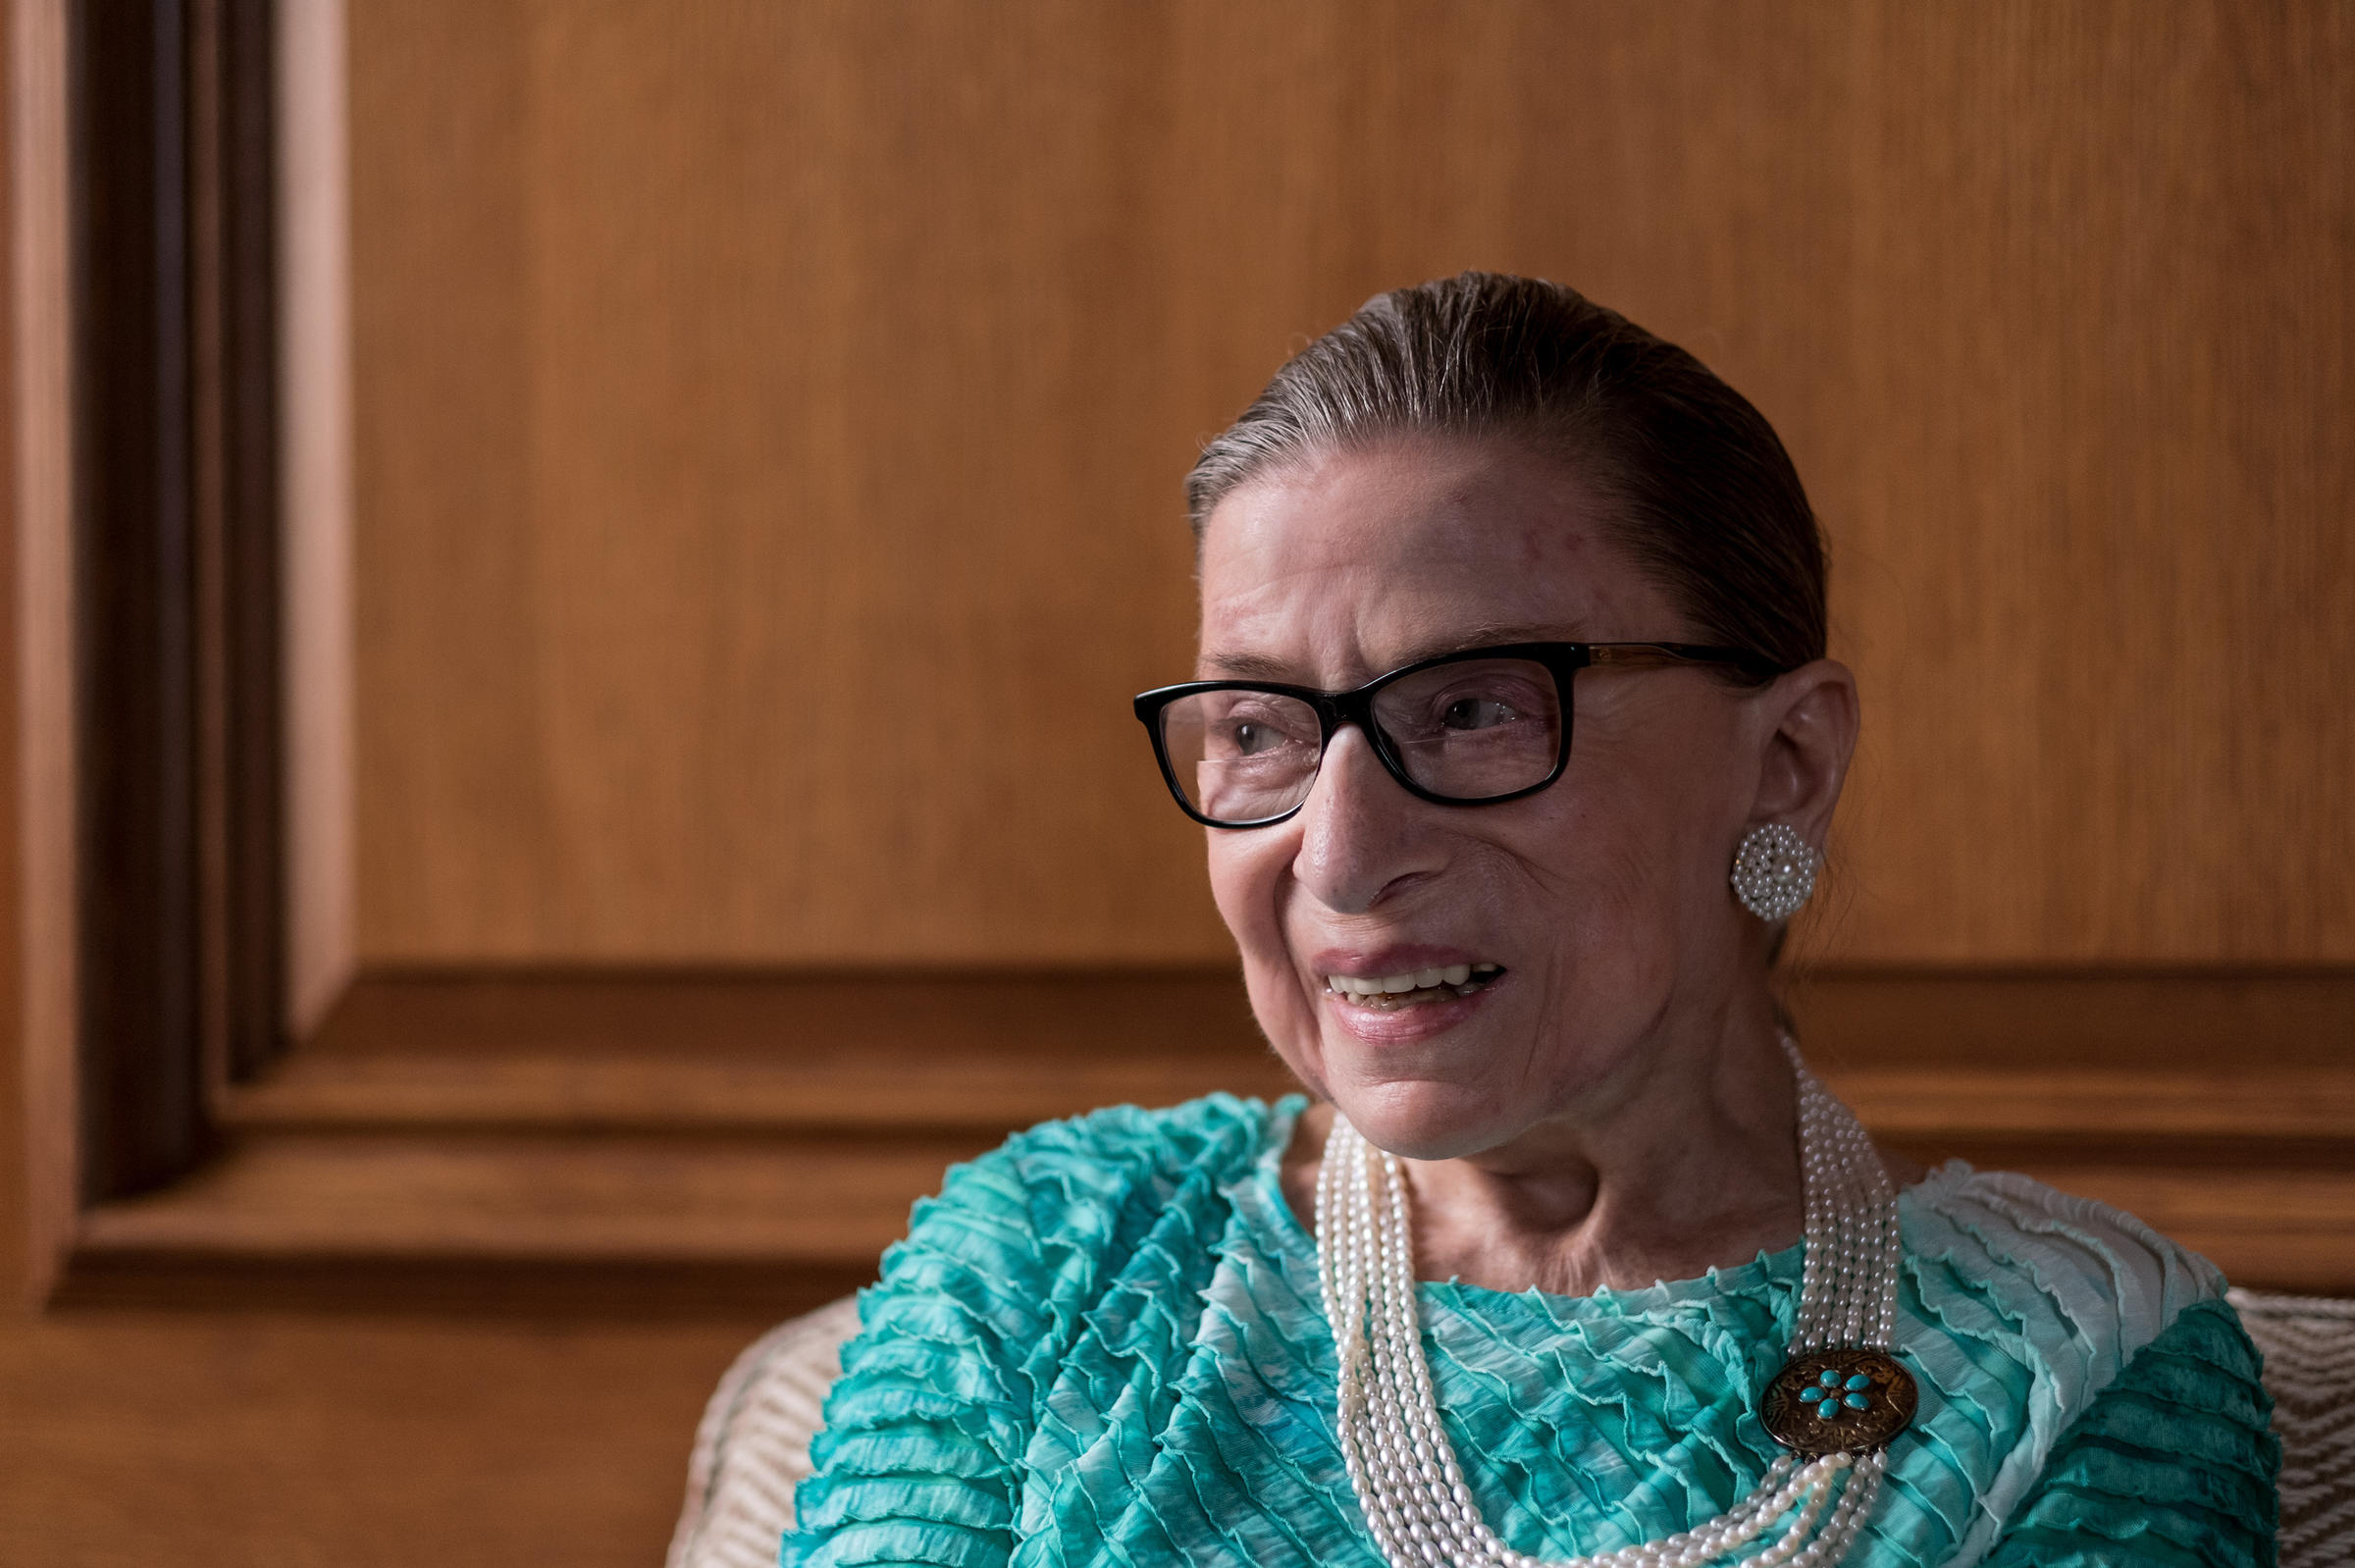 The Key Part Of RBG's Dissent In The Supreme Court 'Cakeshop' Case